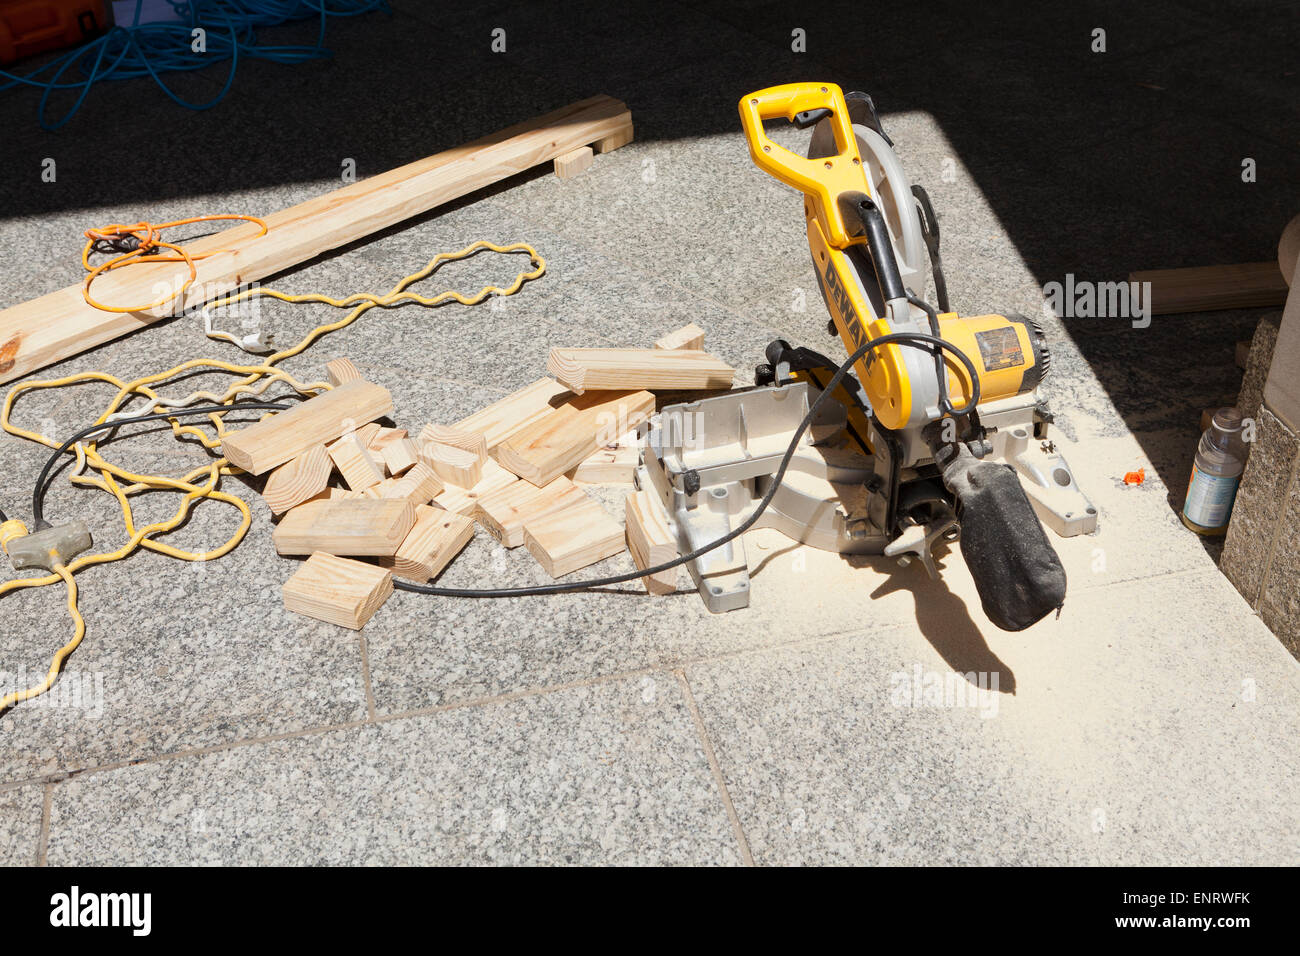 Miter saw at construction site - USA Stock Photo